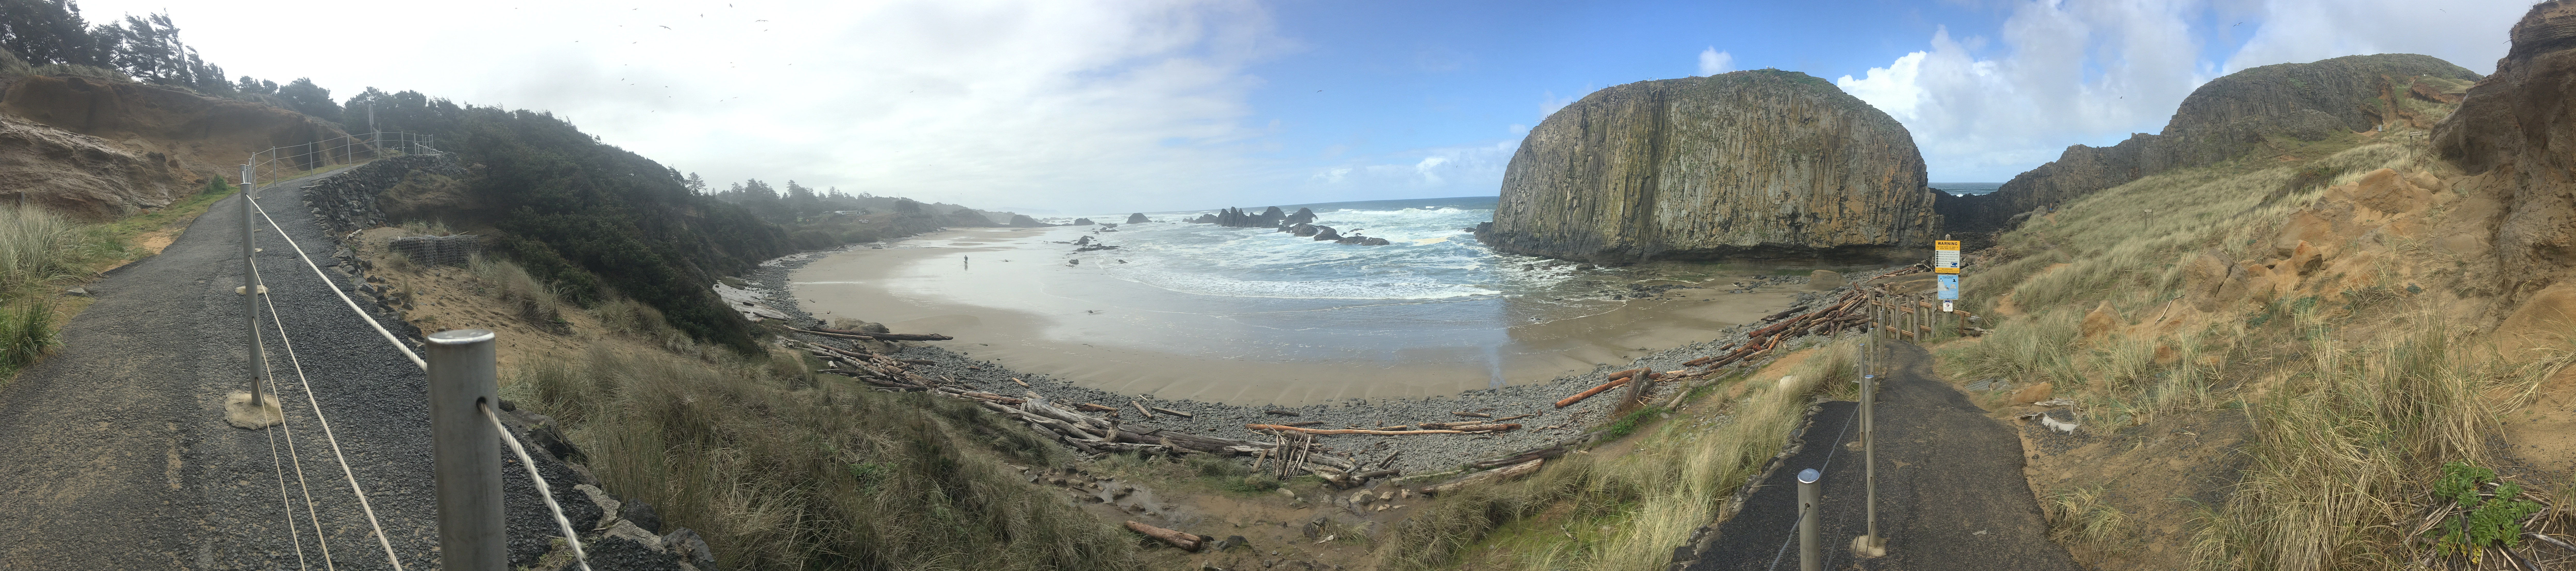 Seal Rock State Recreation Area